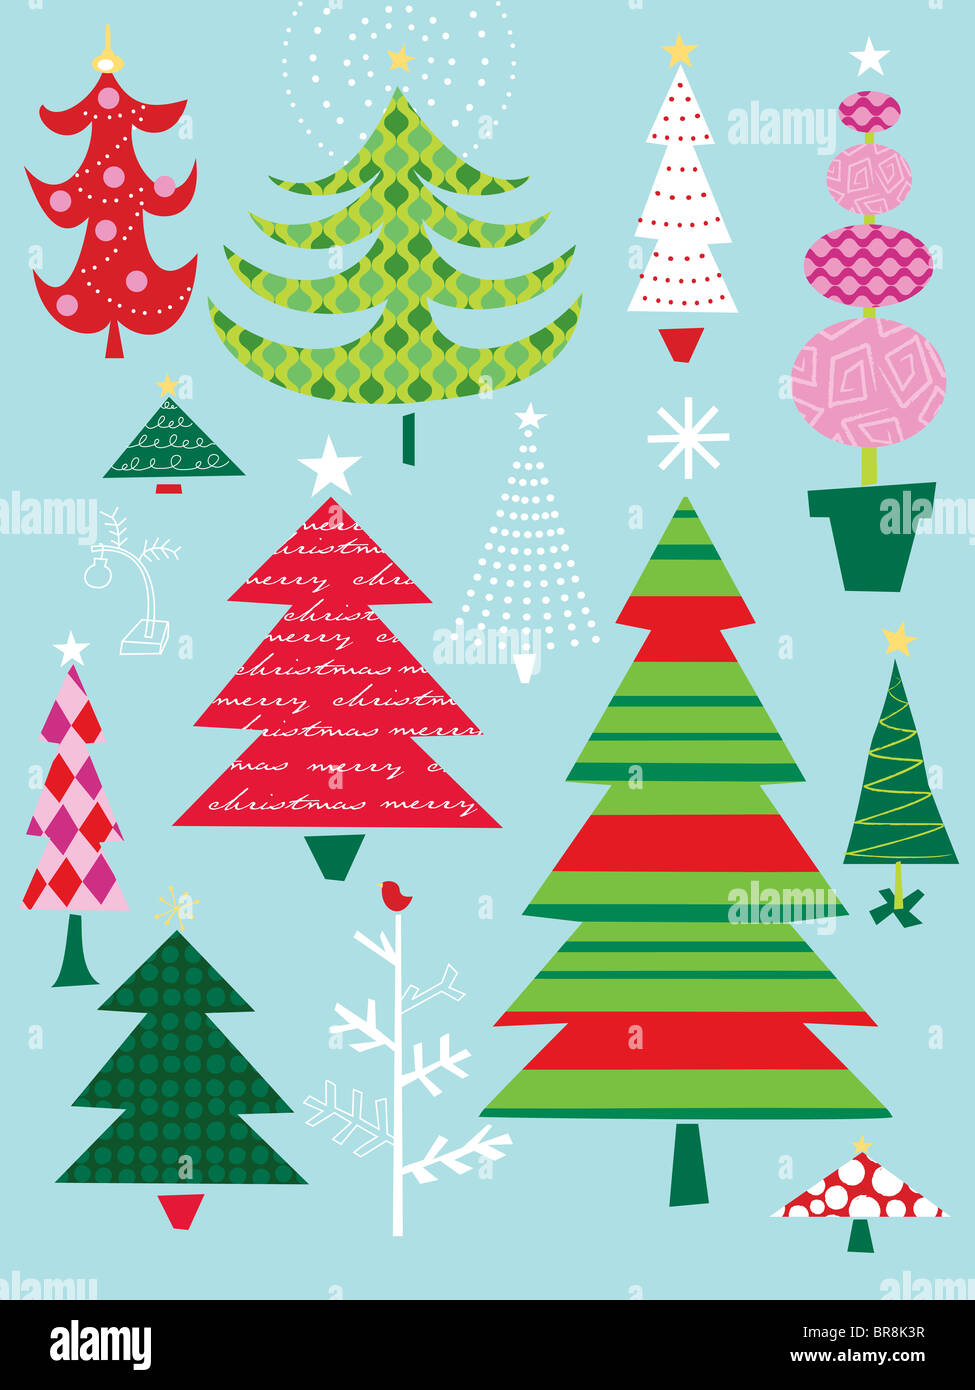 A canvas of different types, styles and colors of Christmas trees ...